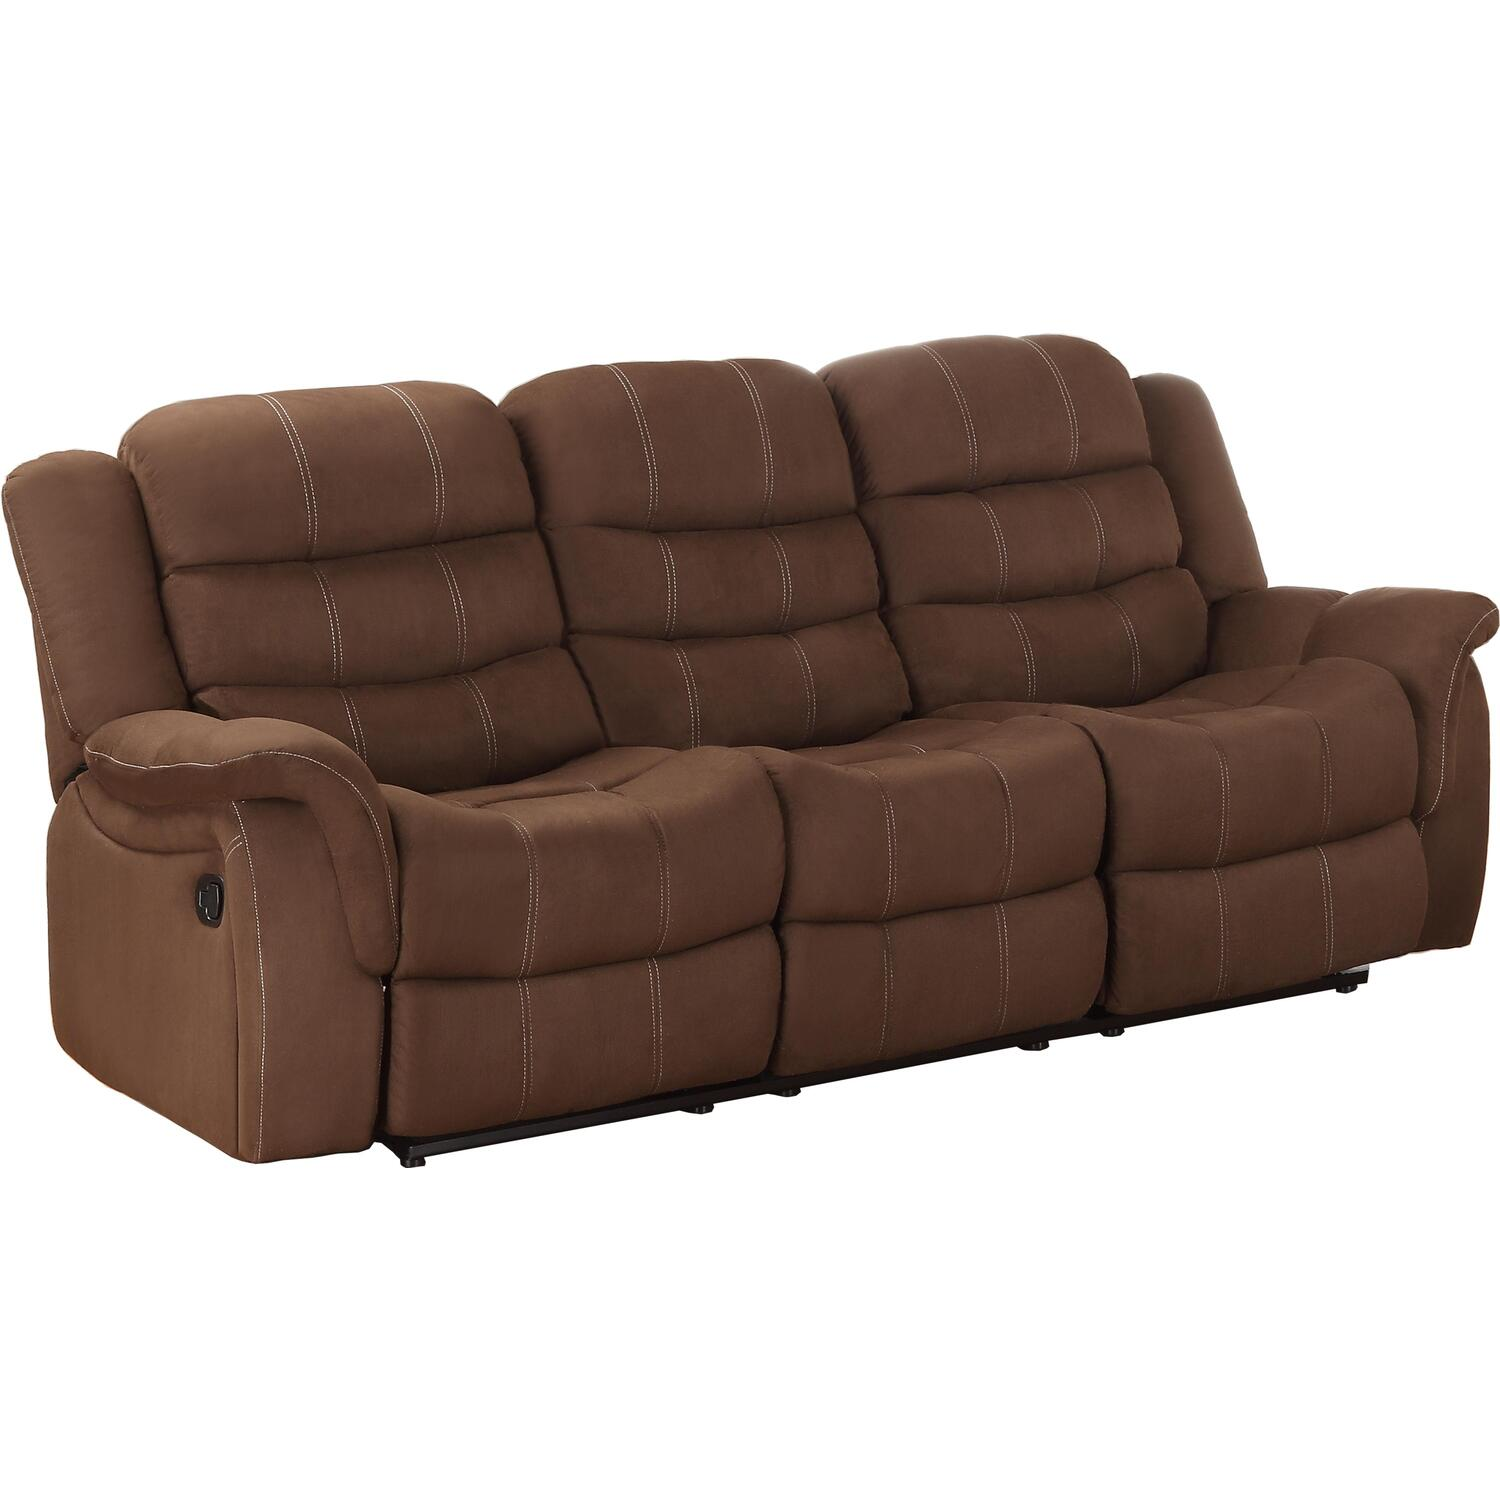 Dual Reclining Sofa Slipcovers Small House Interior